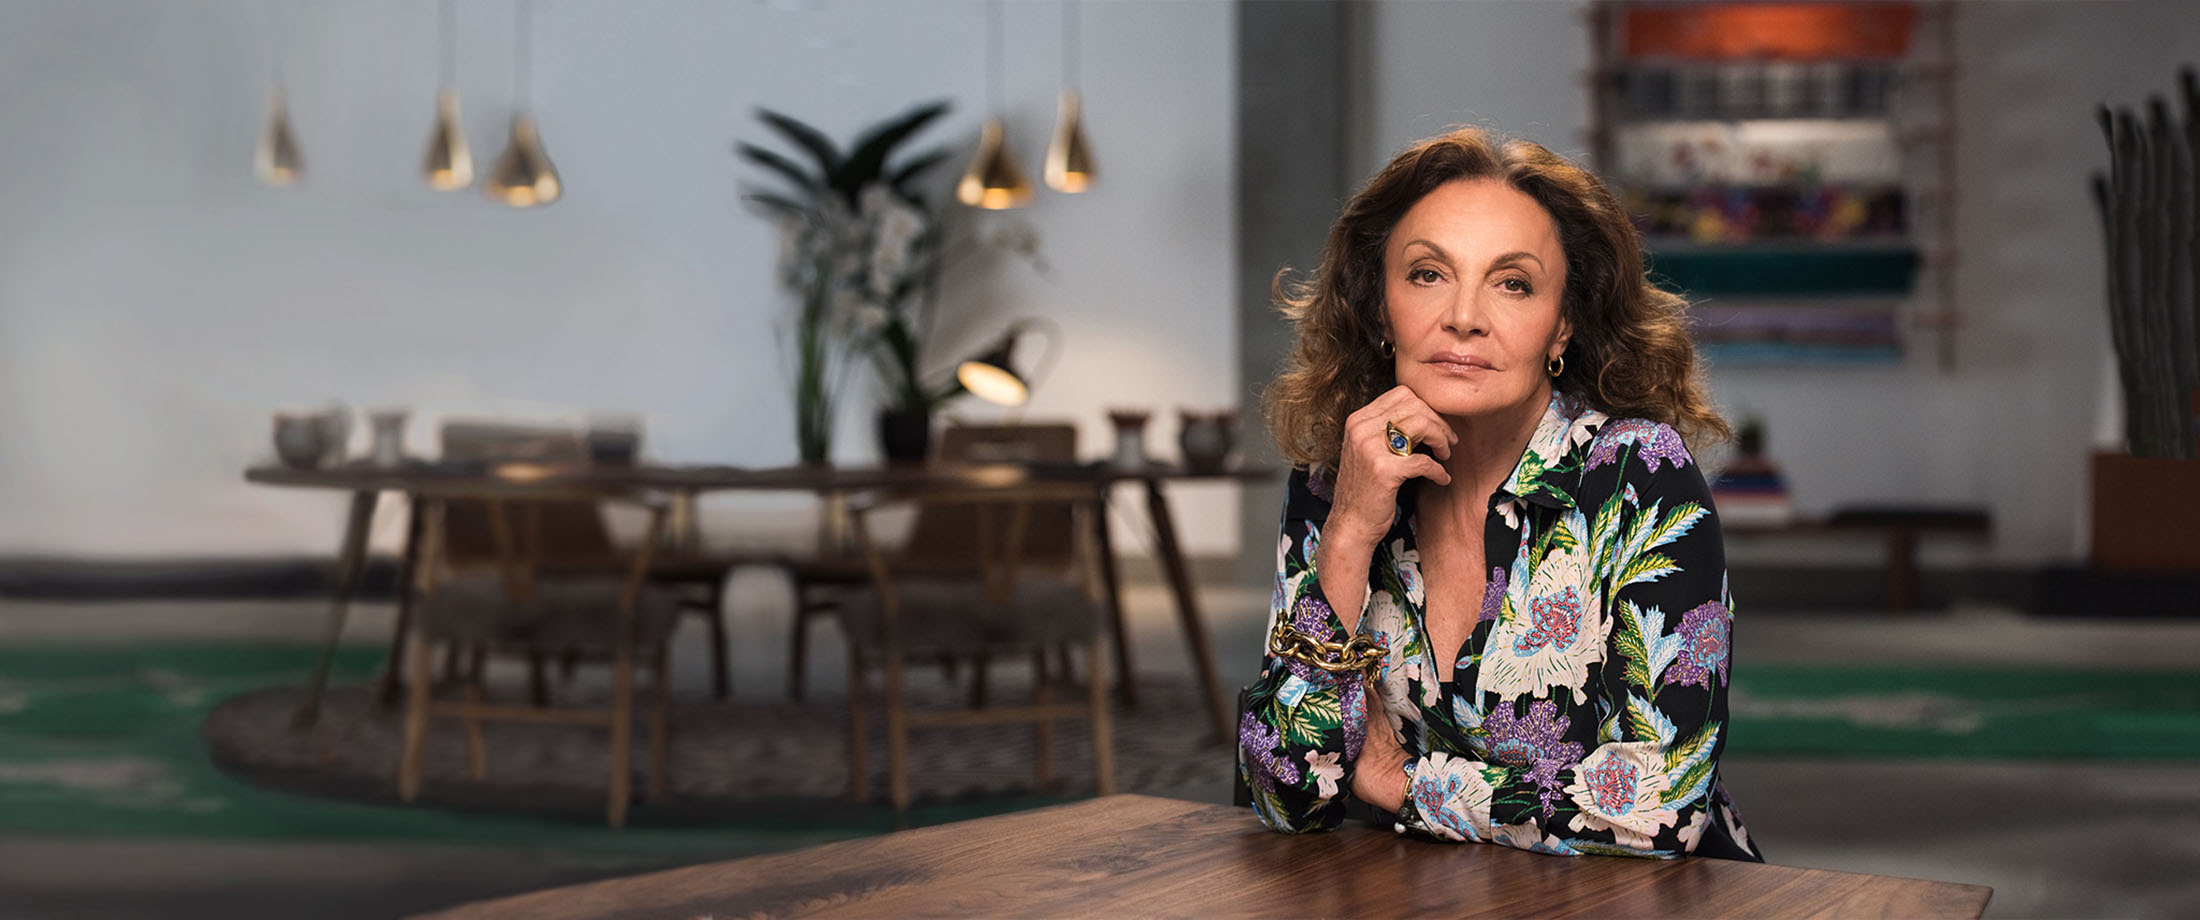 d4befe32c When it comes to establishing a strong brand identity, it's hard to think  of a better example than Diane Von Furstenberg, who created her eponymous  ...